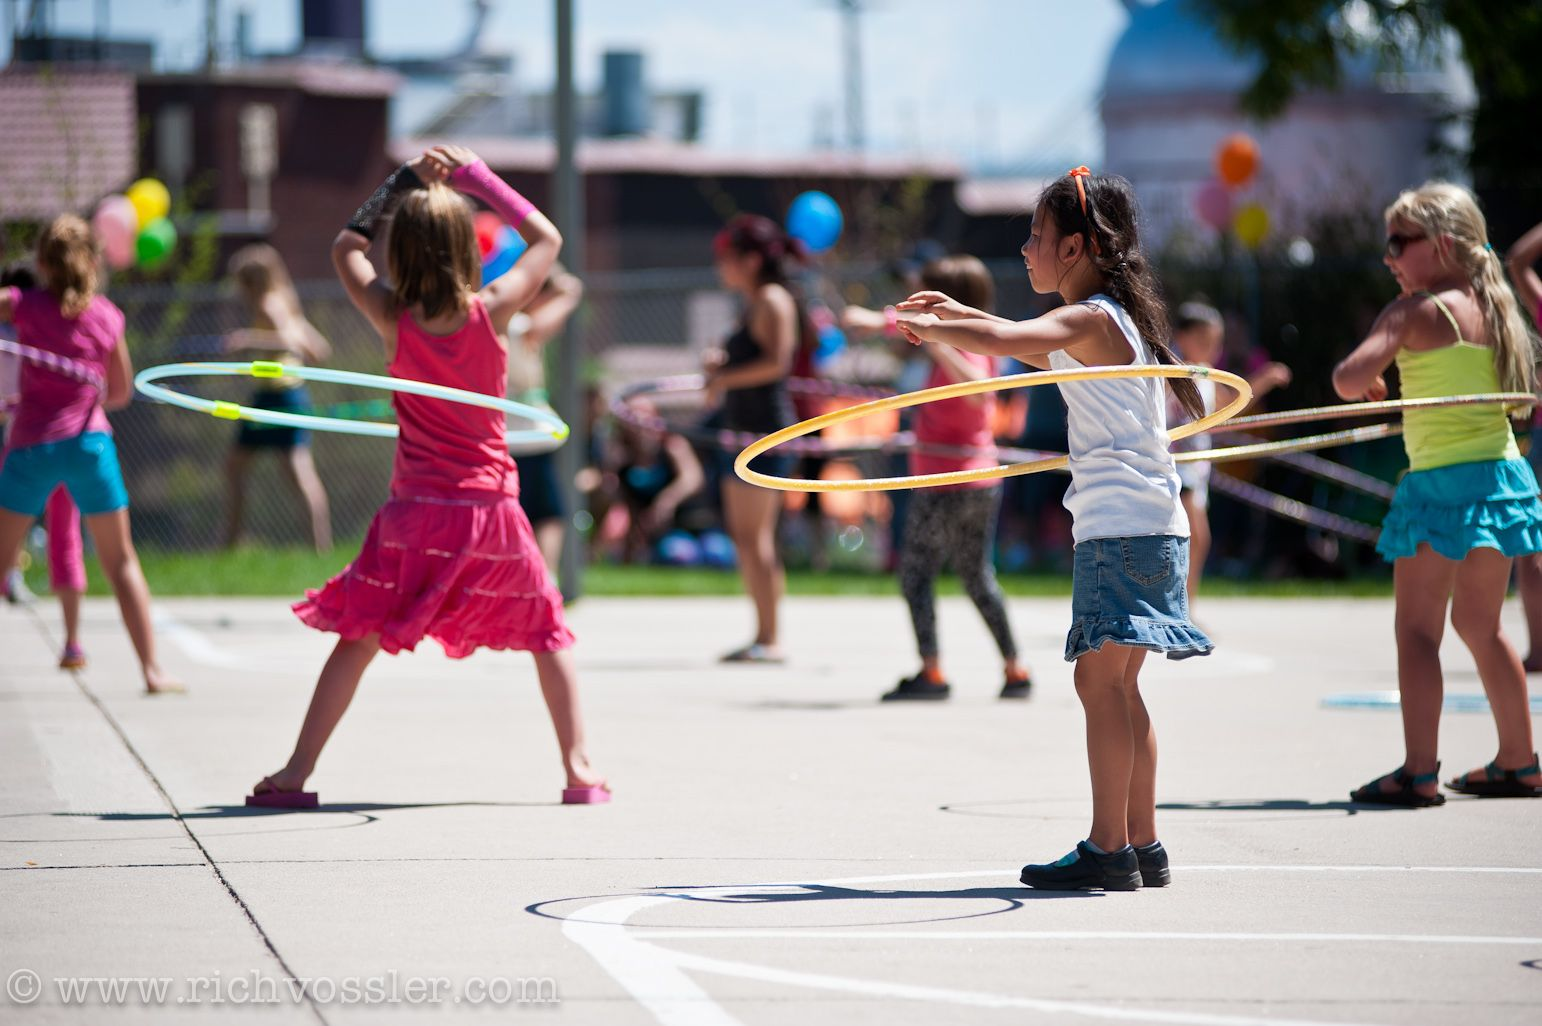 Hula Hoop Contest – your classic hula hoop contest, hula for